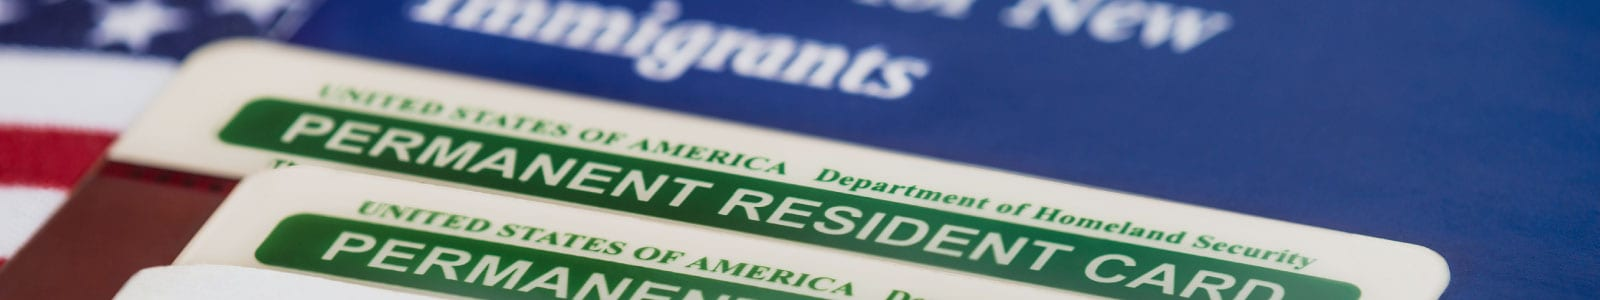 permanent resident card - green card